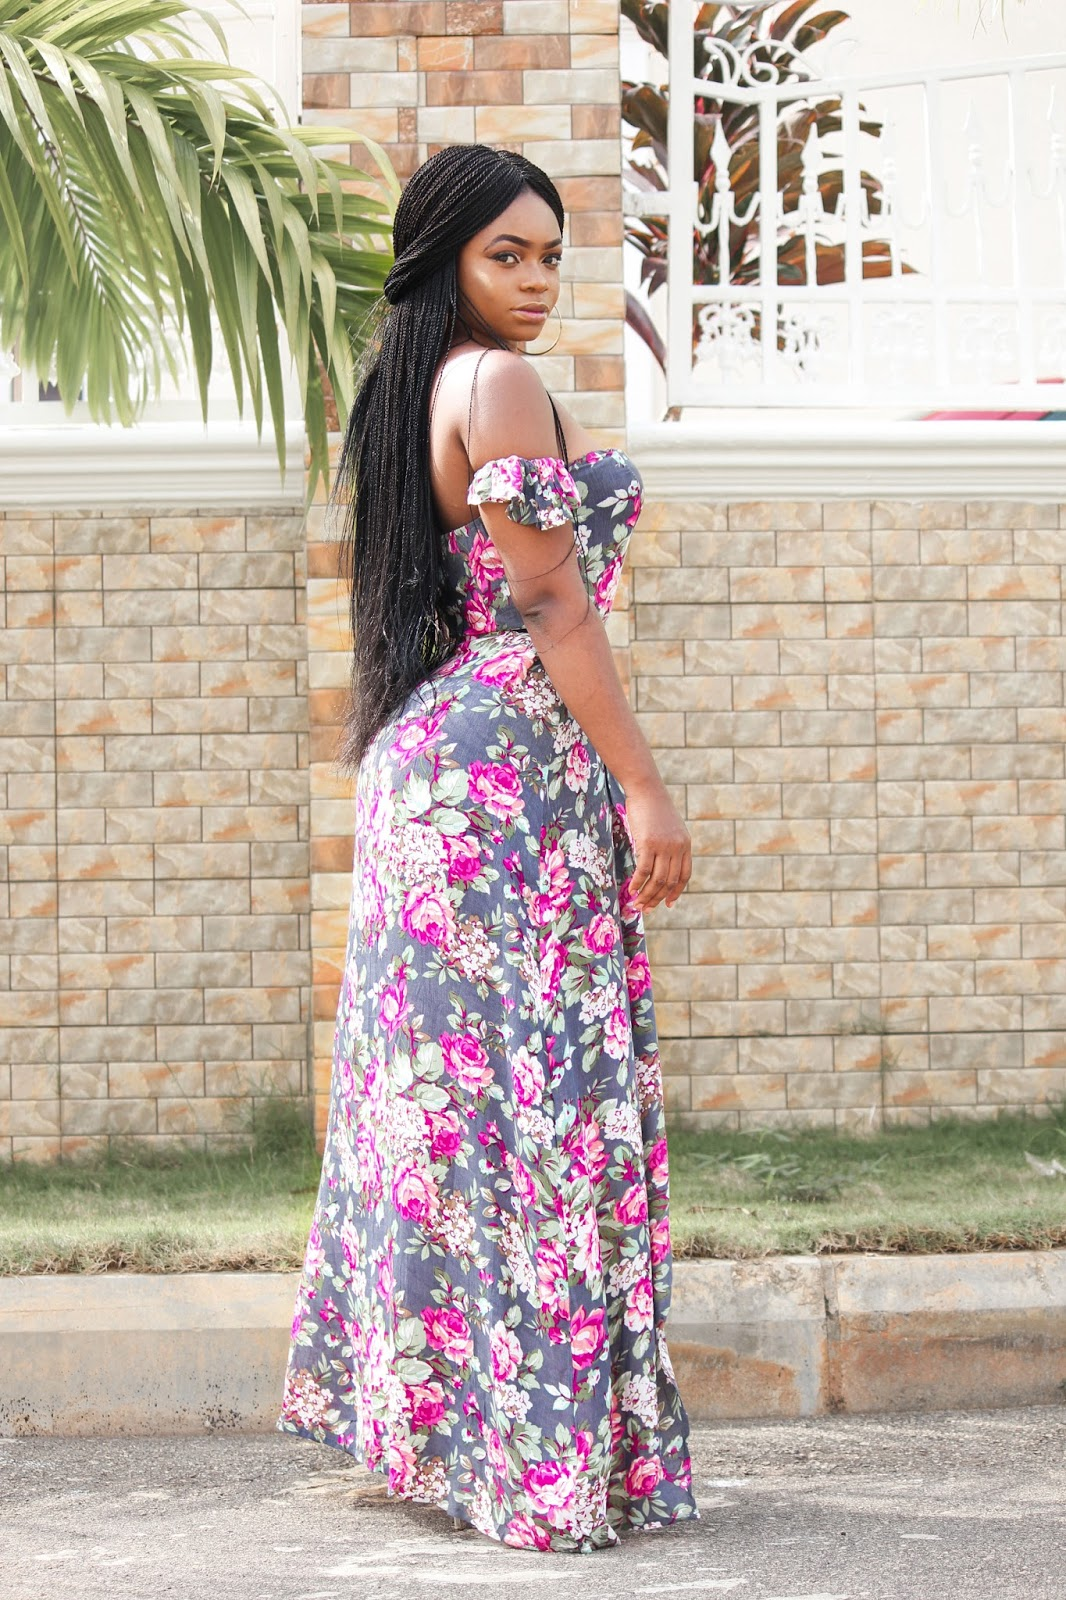 OFF SHOULDER FLORAL MAXI - Zaful Off Shoulder Floral Maxi Dress with Zara Sandals